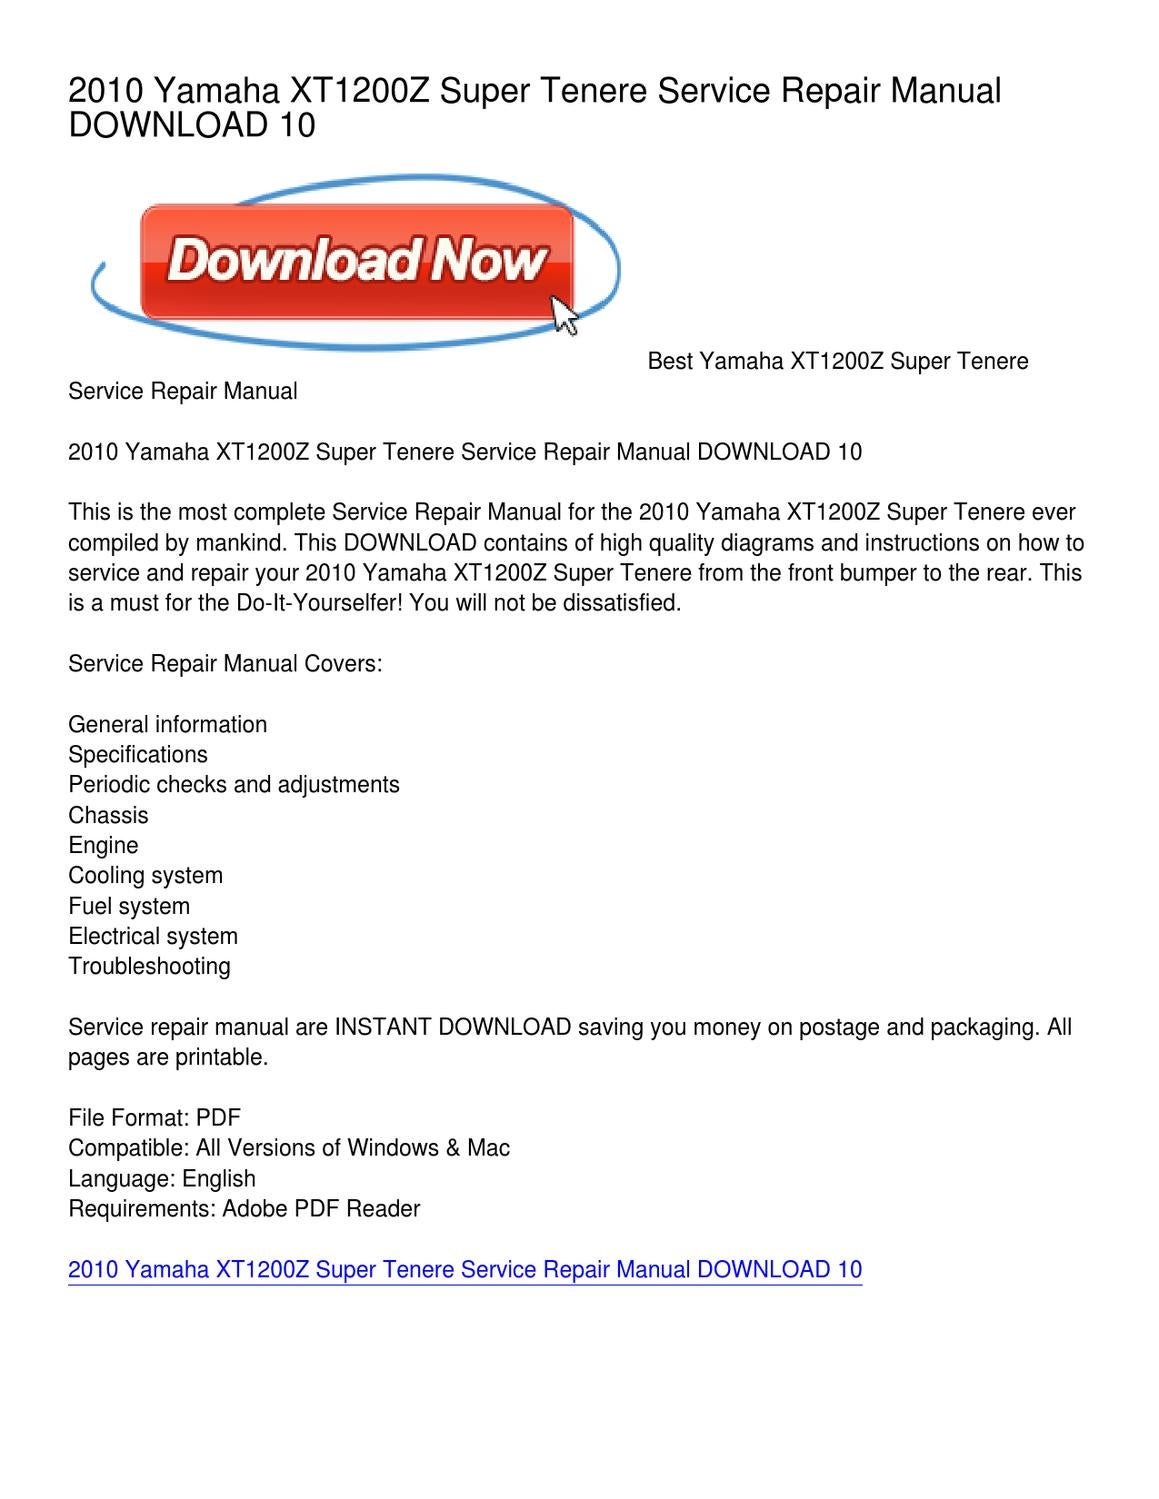 2010 Yamaha XT1200Z Super Tenere Service Repair Manual DOWNLOAD 10 by  Cynthia Marshall - issuu